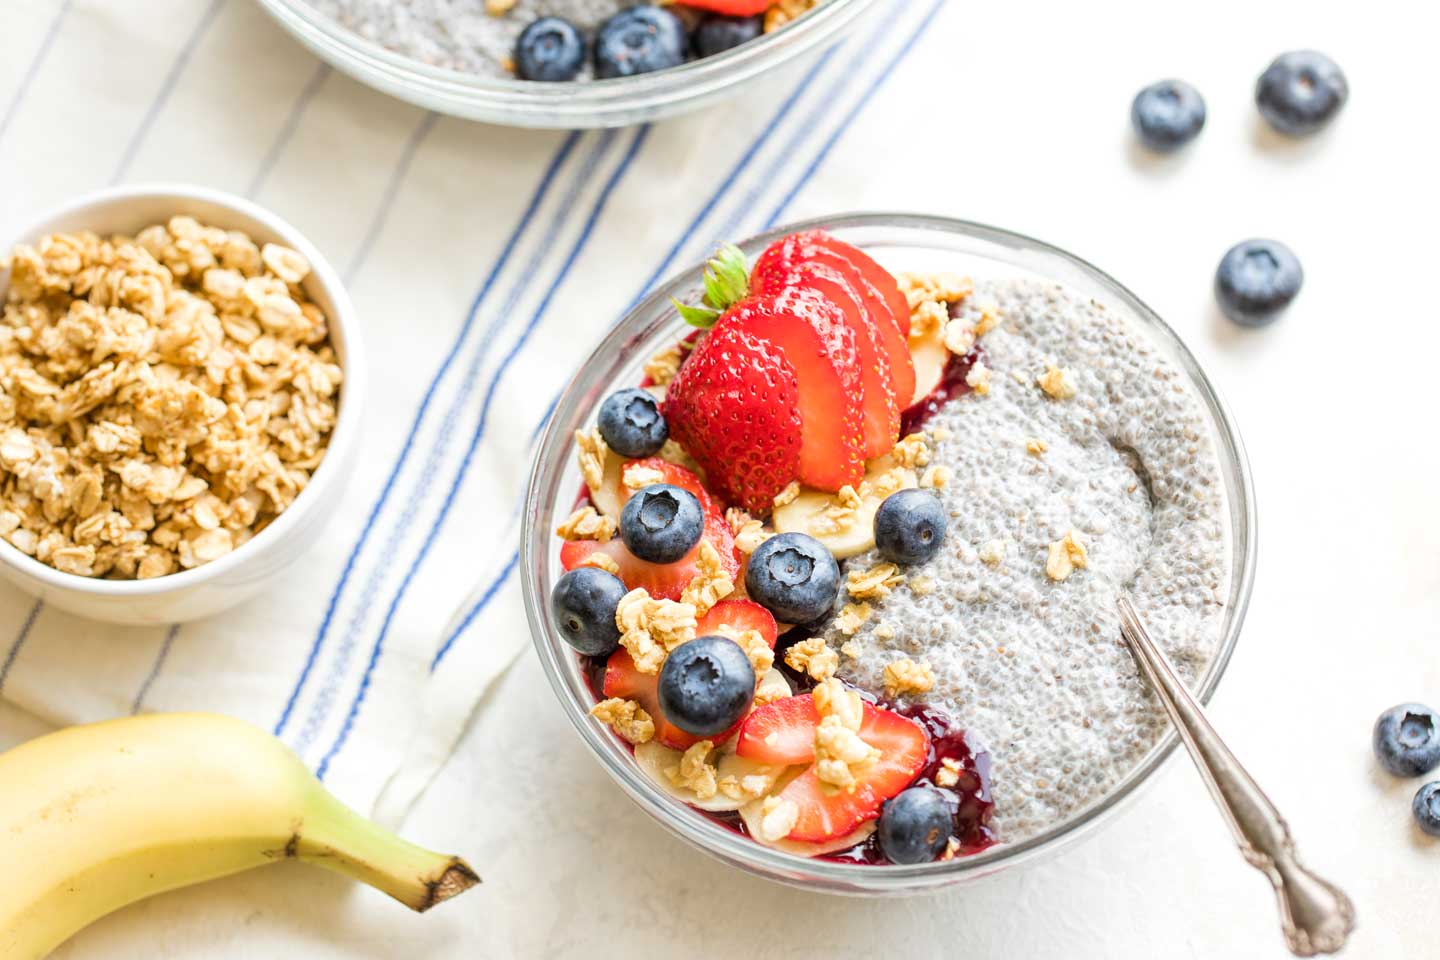 Serving idea showing a little bowl of chia pudding topped with blueberries, strawberries and granola.